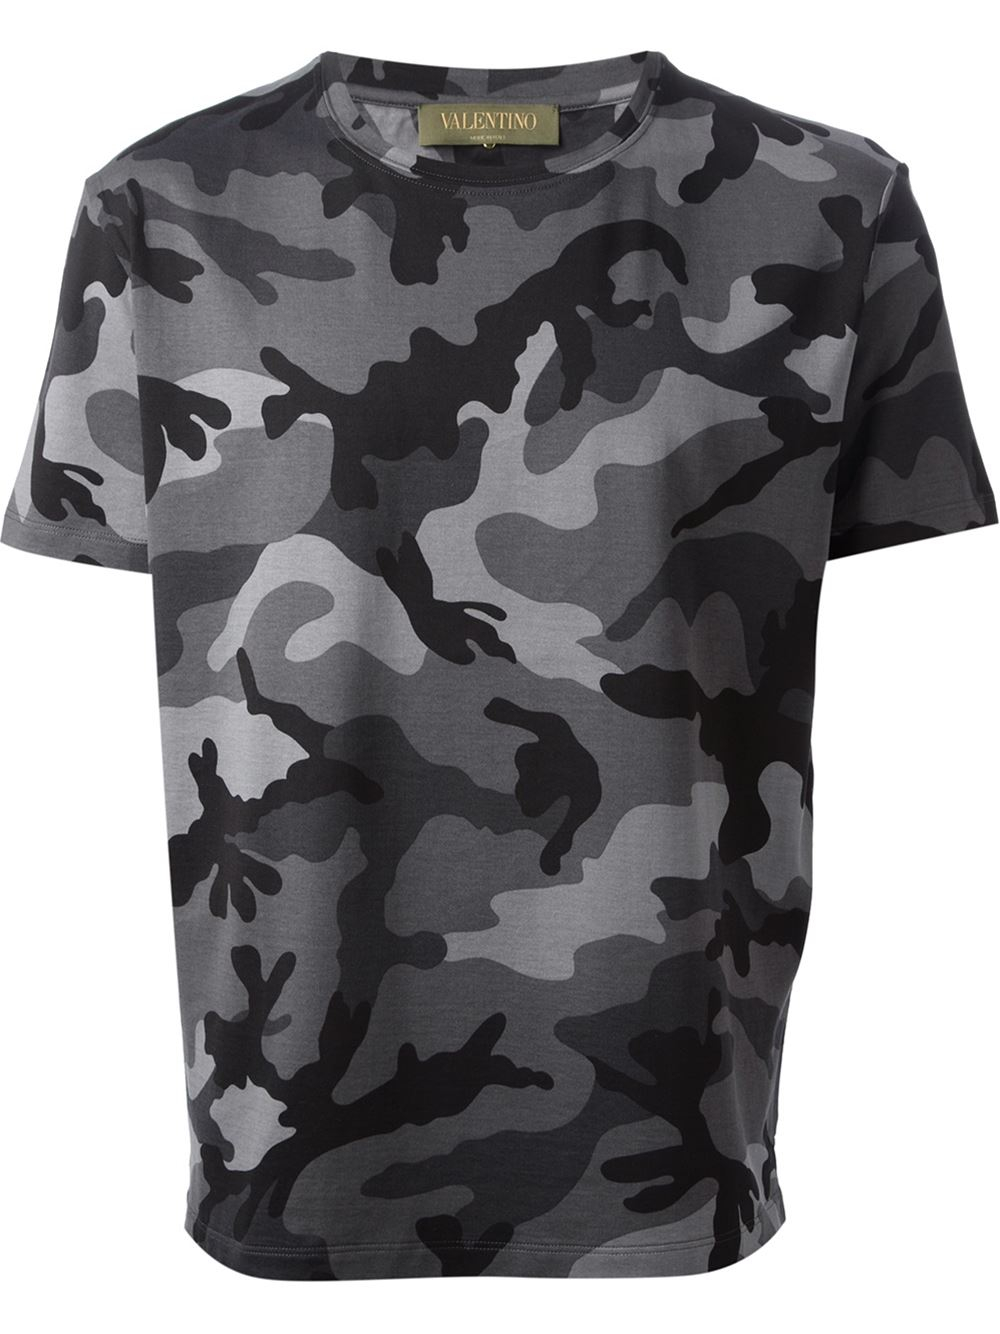 7829559a5c01b Camo T Shirts With Printing « Alzheimer's Network of Oregon